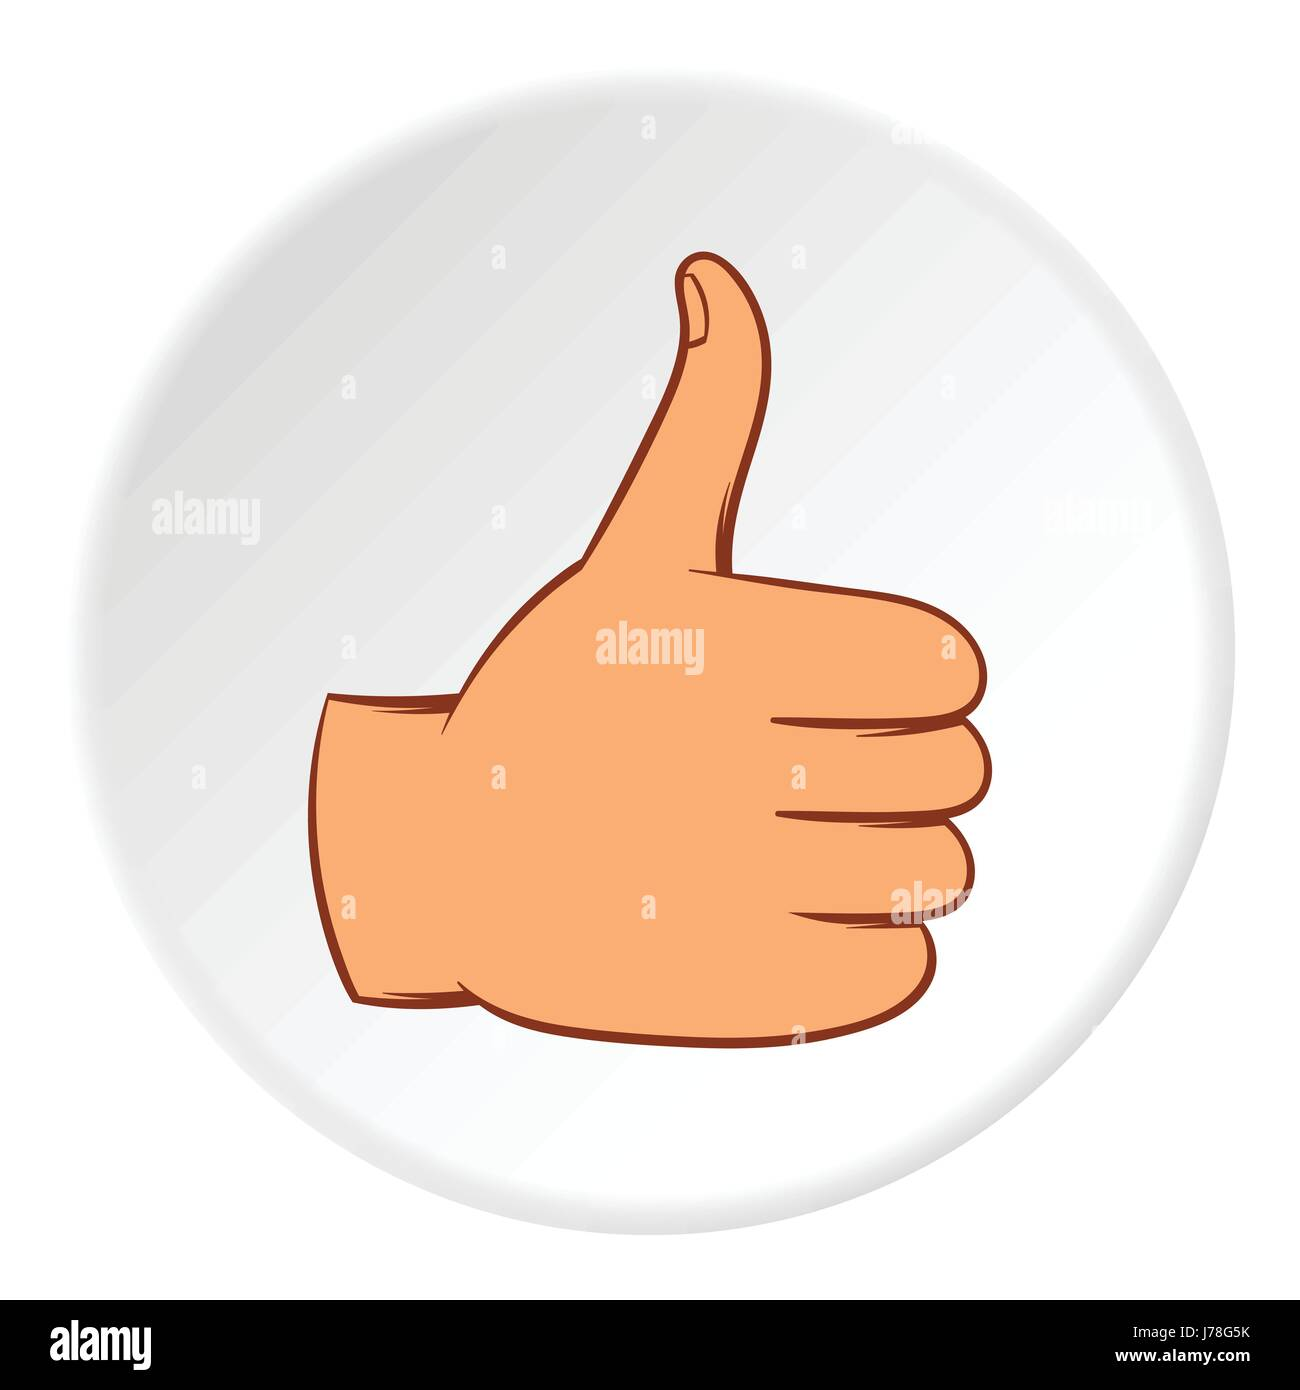 gesture approval icon in cartoon style on white circle background